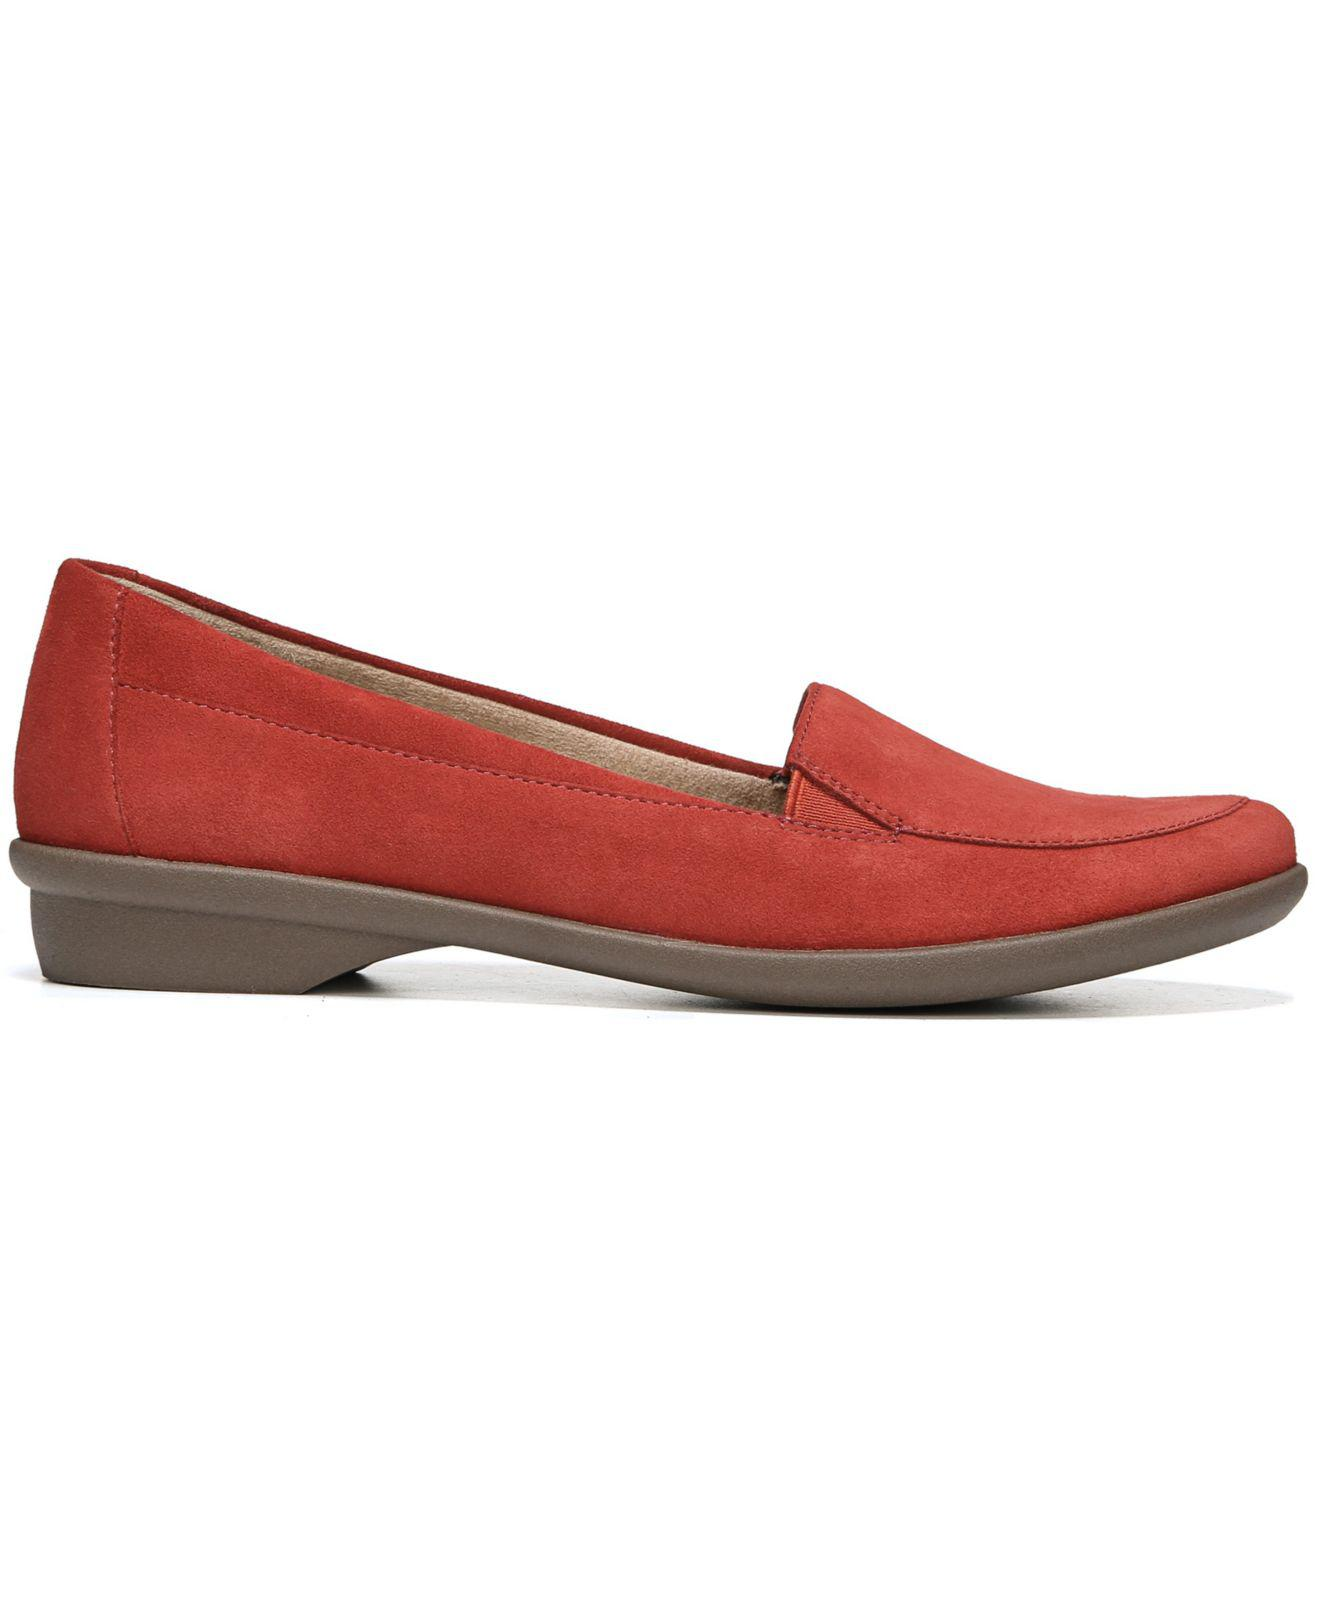 1588bc56dba Lyst - Naturalizer Panache Loafers in Red